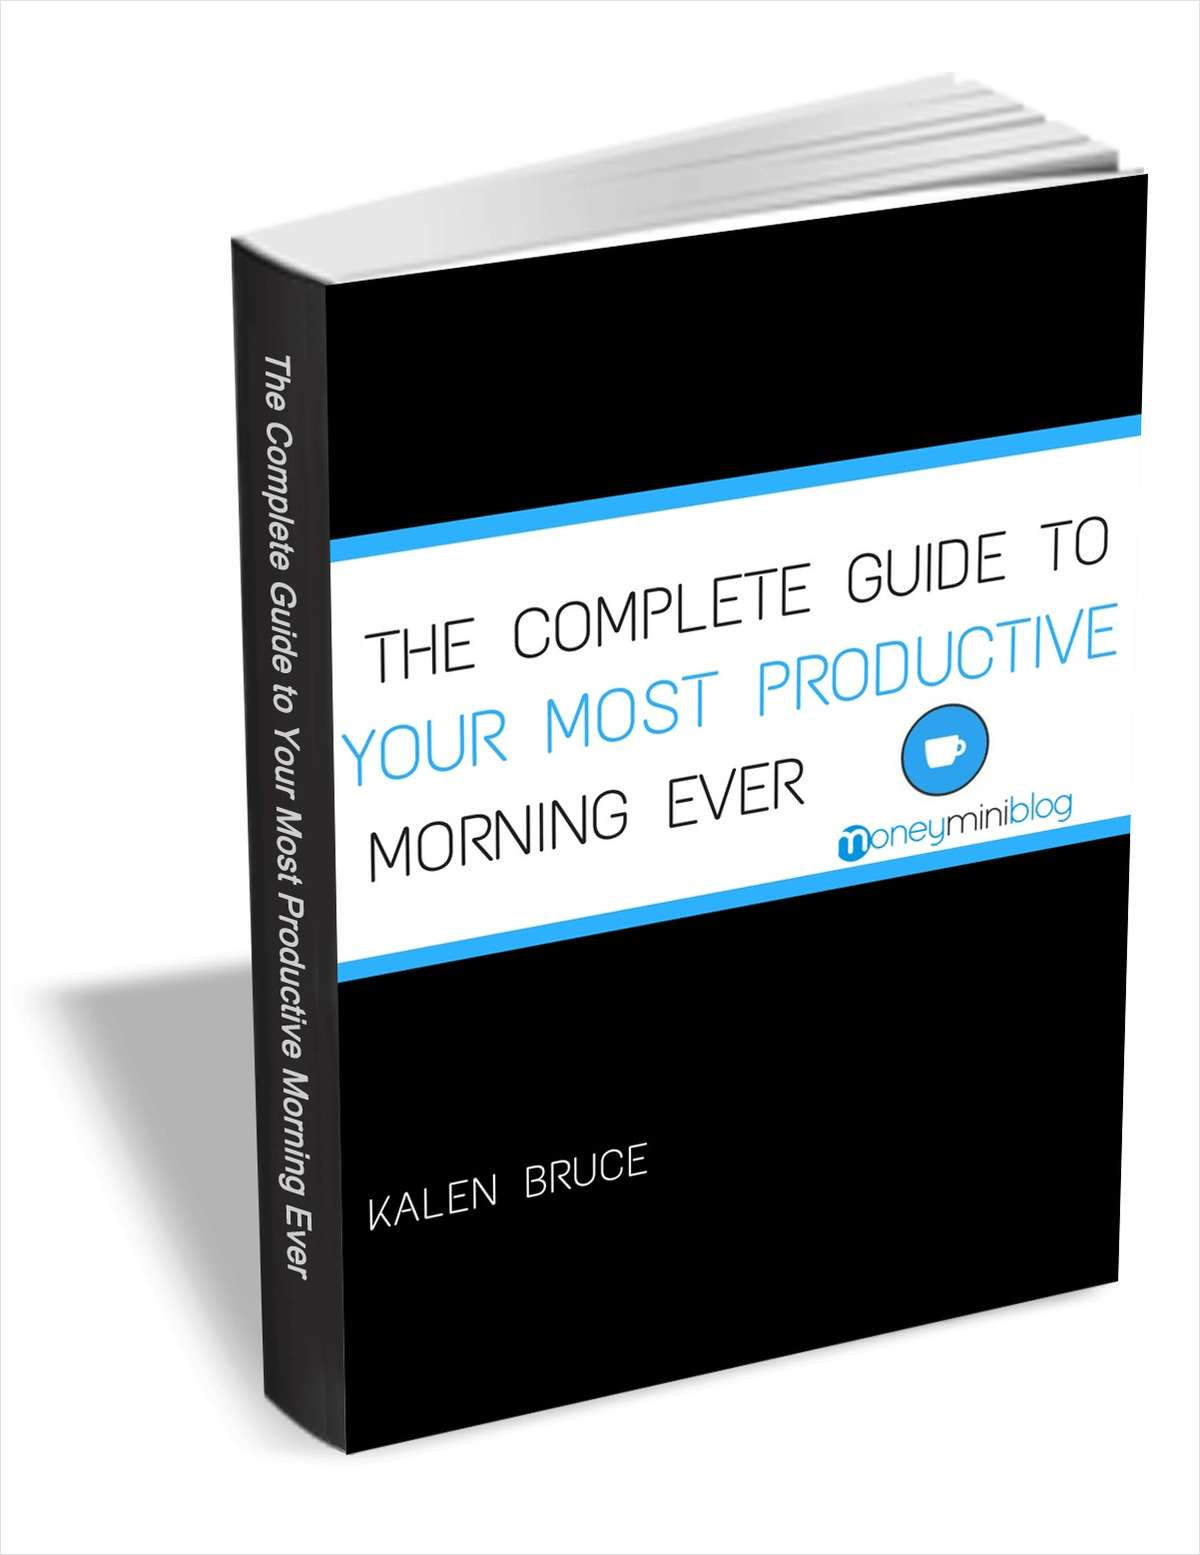 The Complete Guide to Your Most Productive Morning Ever